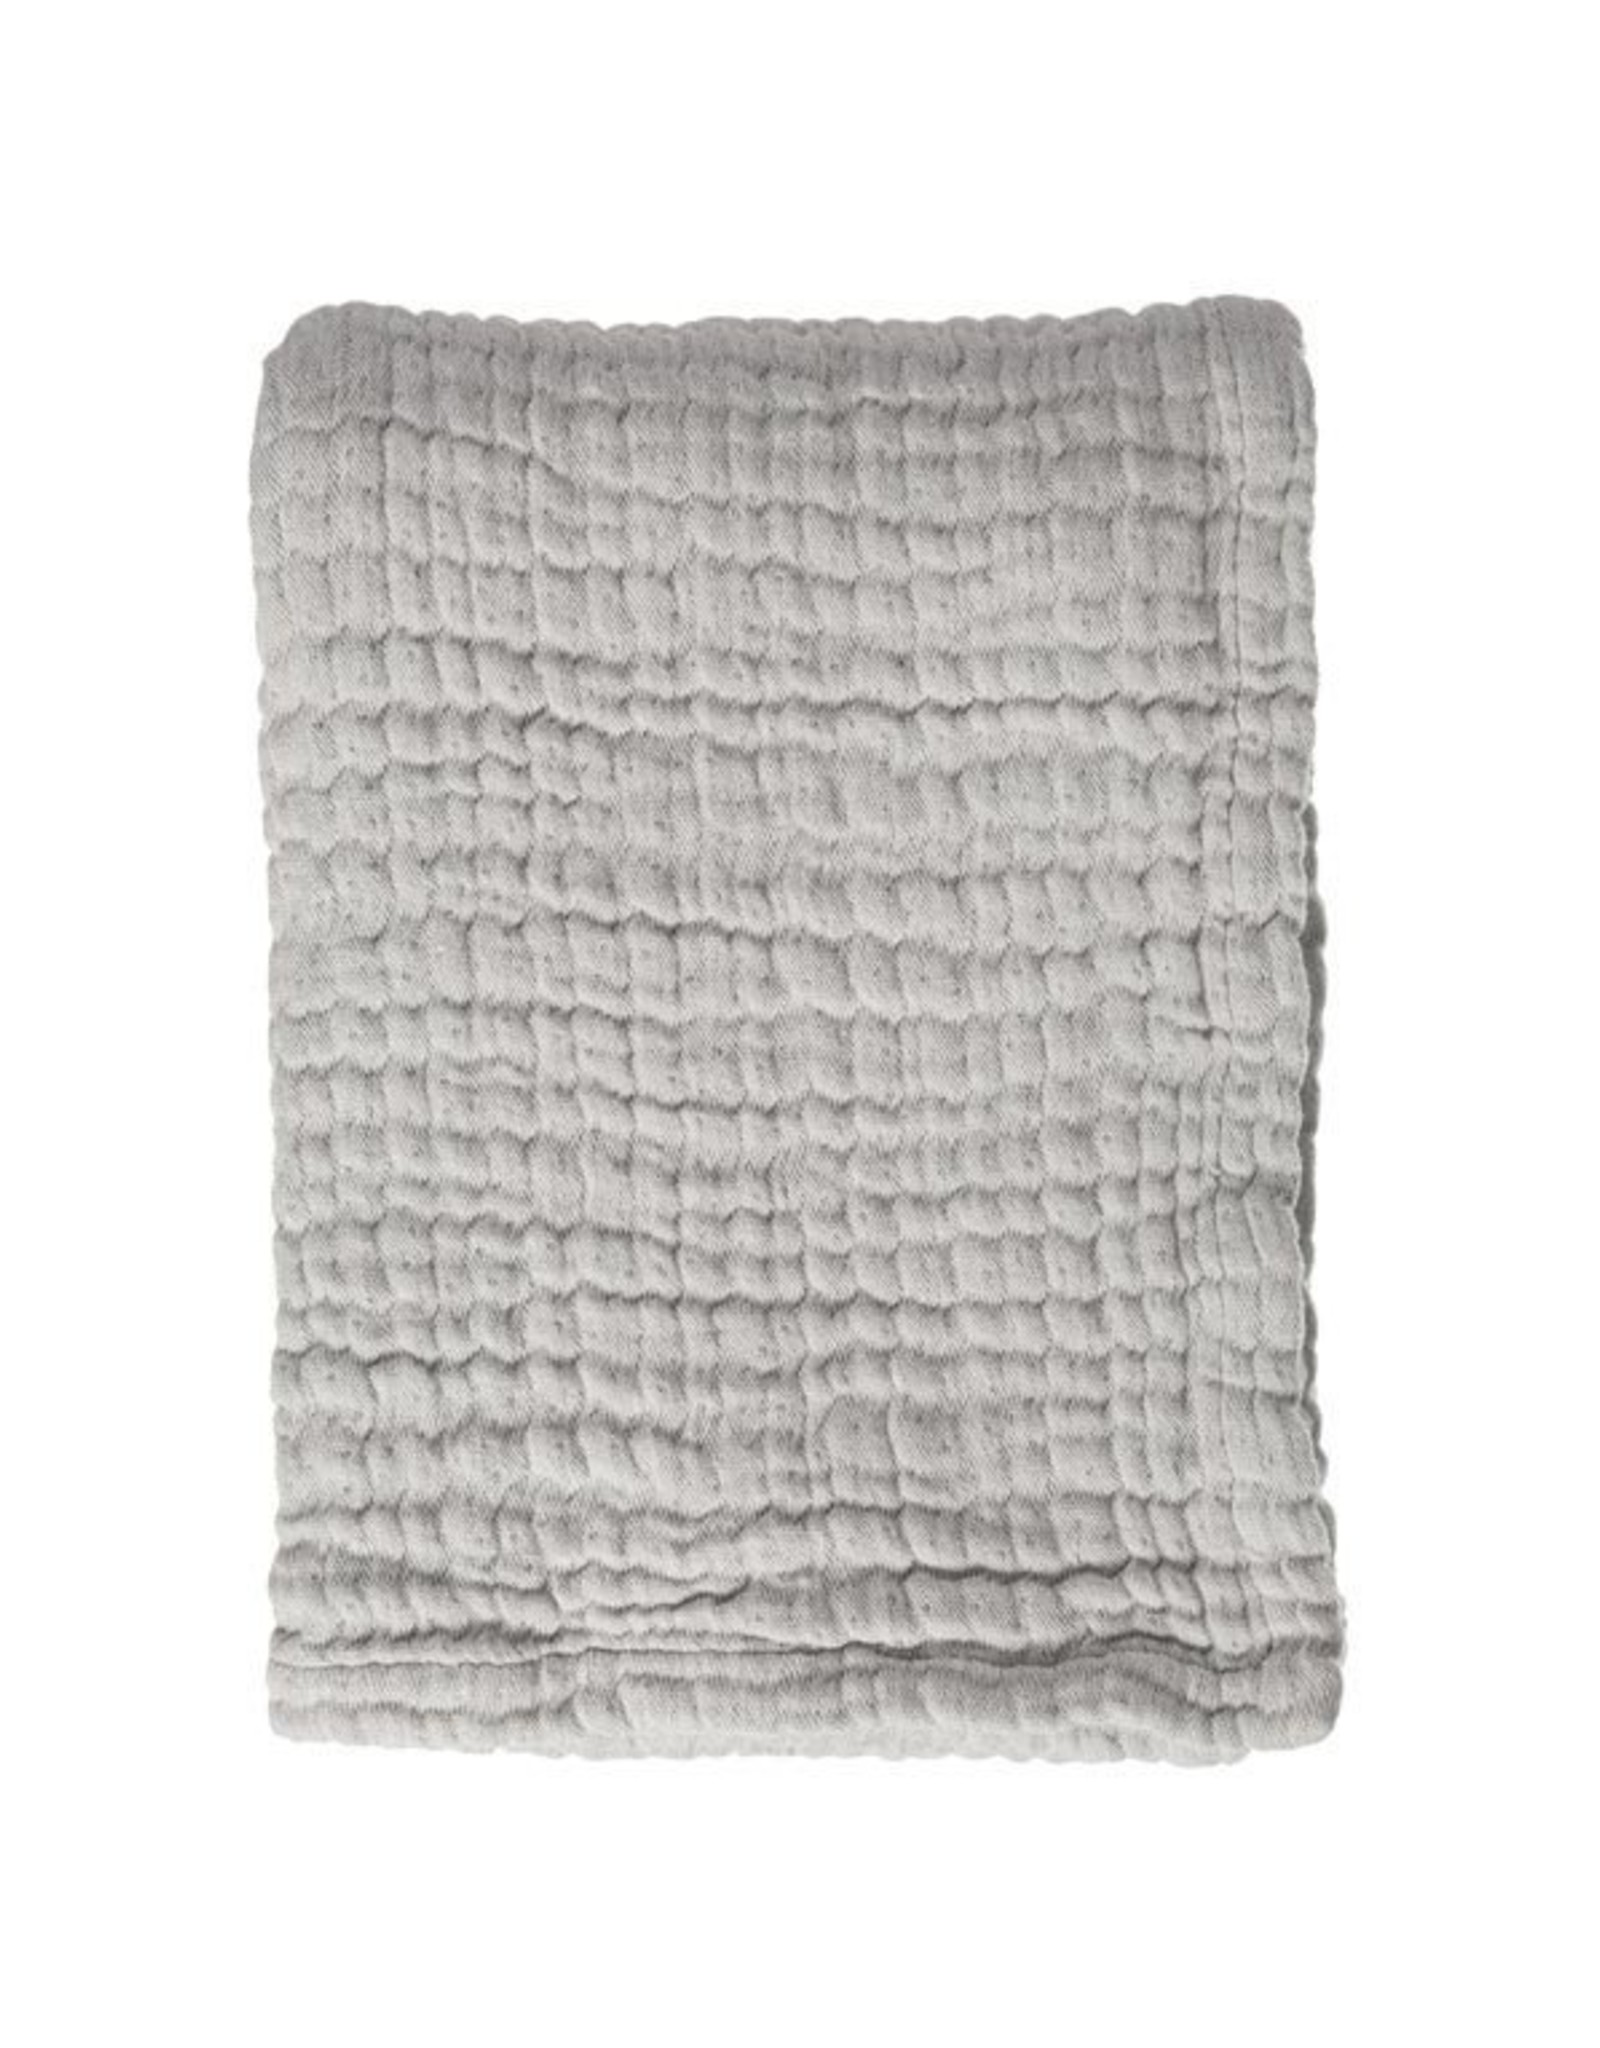 MIES&CO Mies&co - Soft mousseline blanket - Gentle Grey